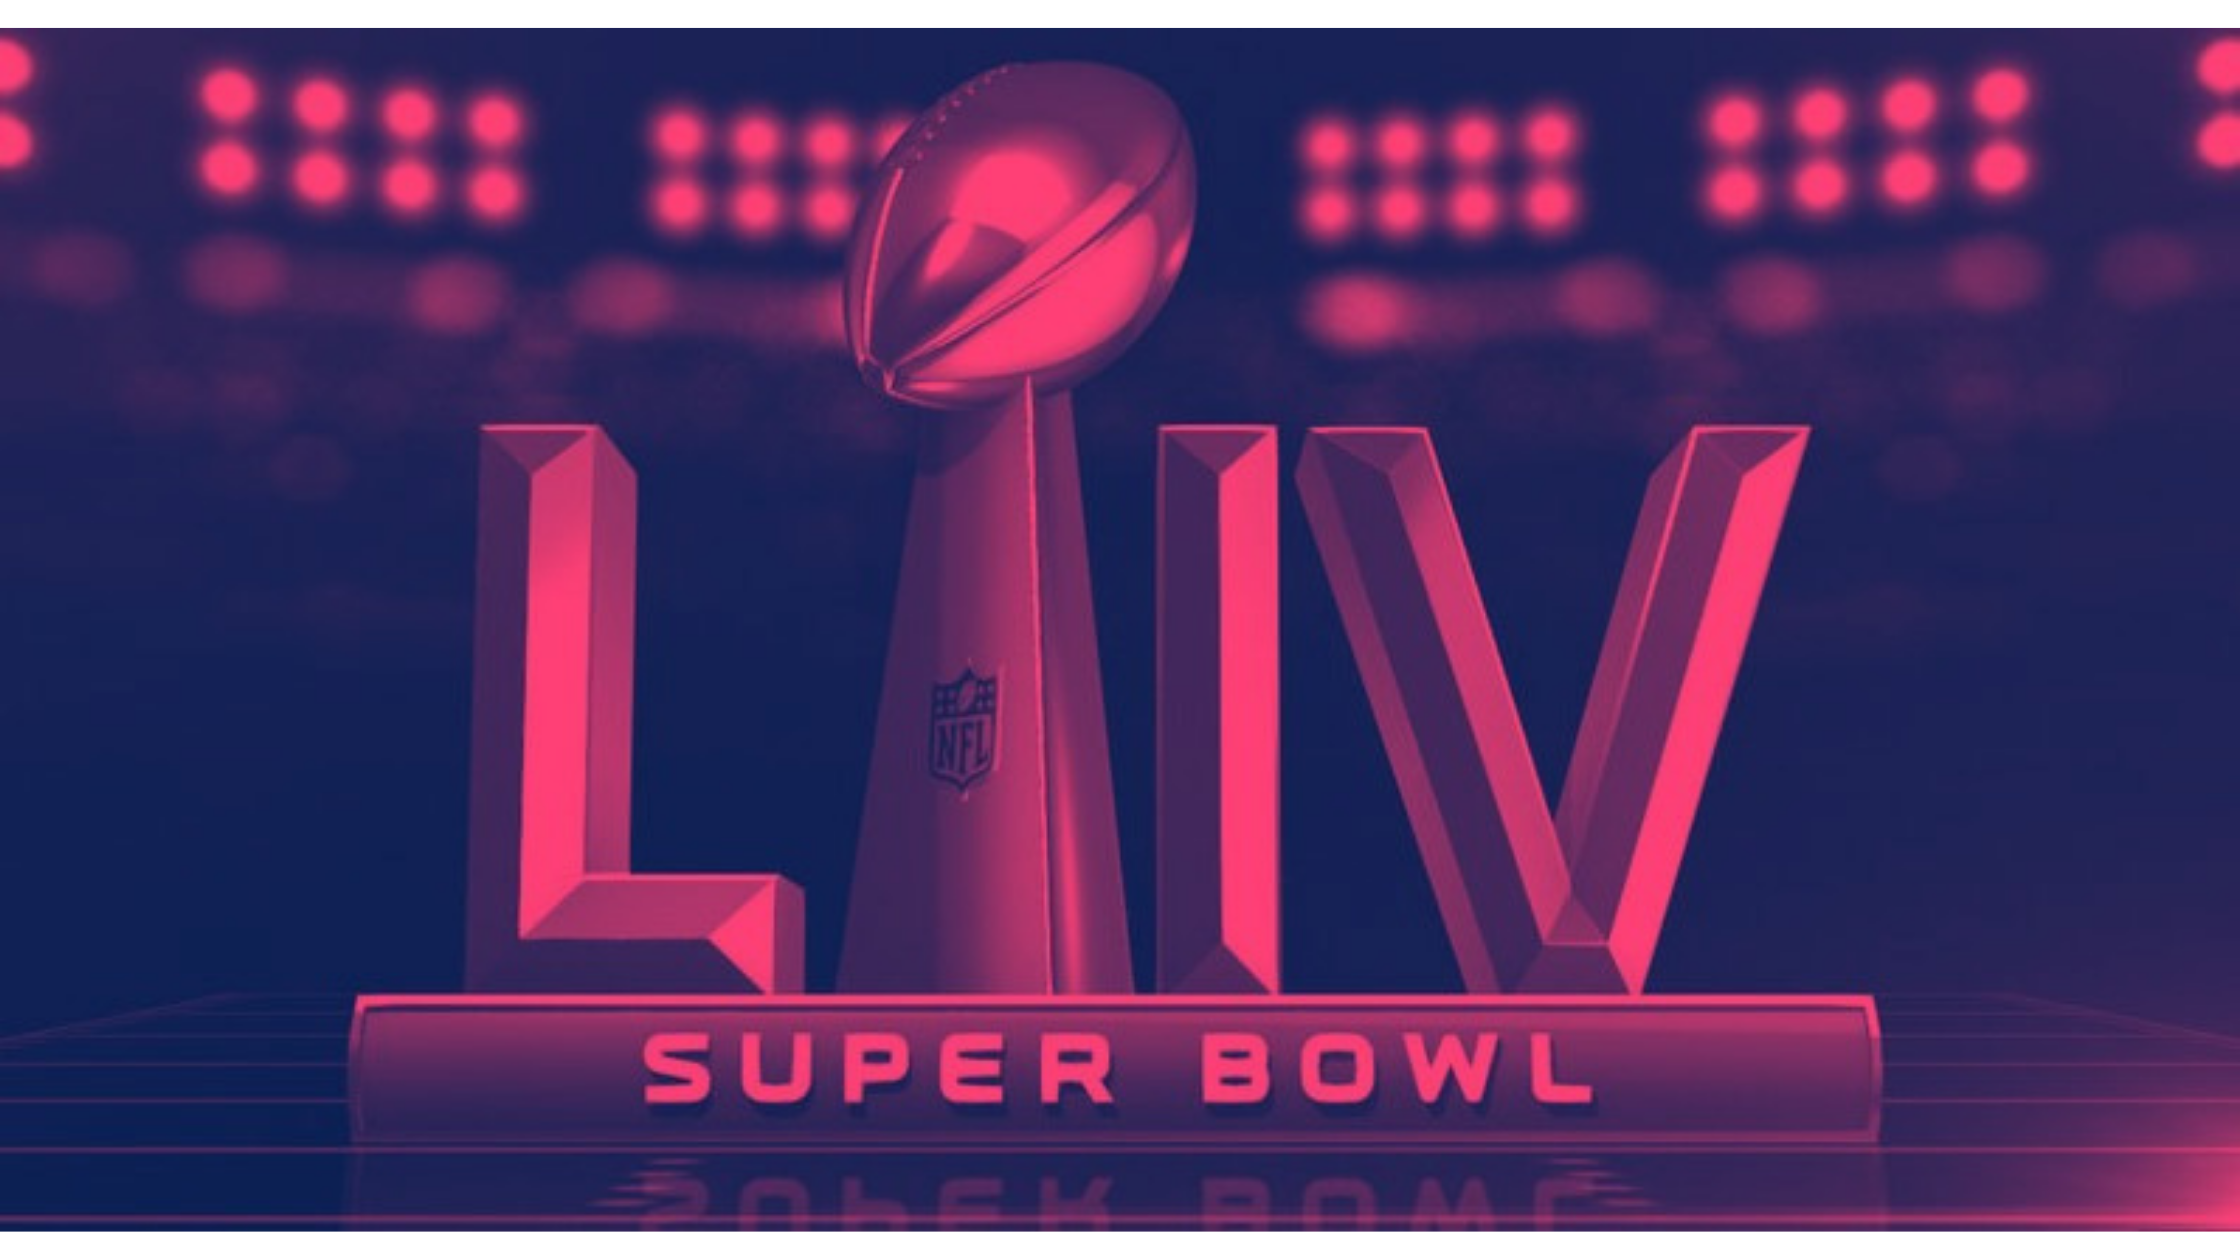 Digital Ads and a Socially Distanced Super Bowl